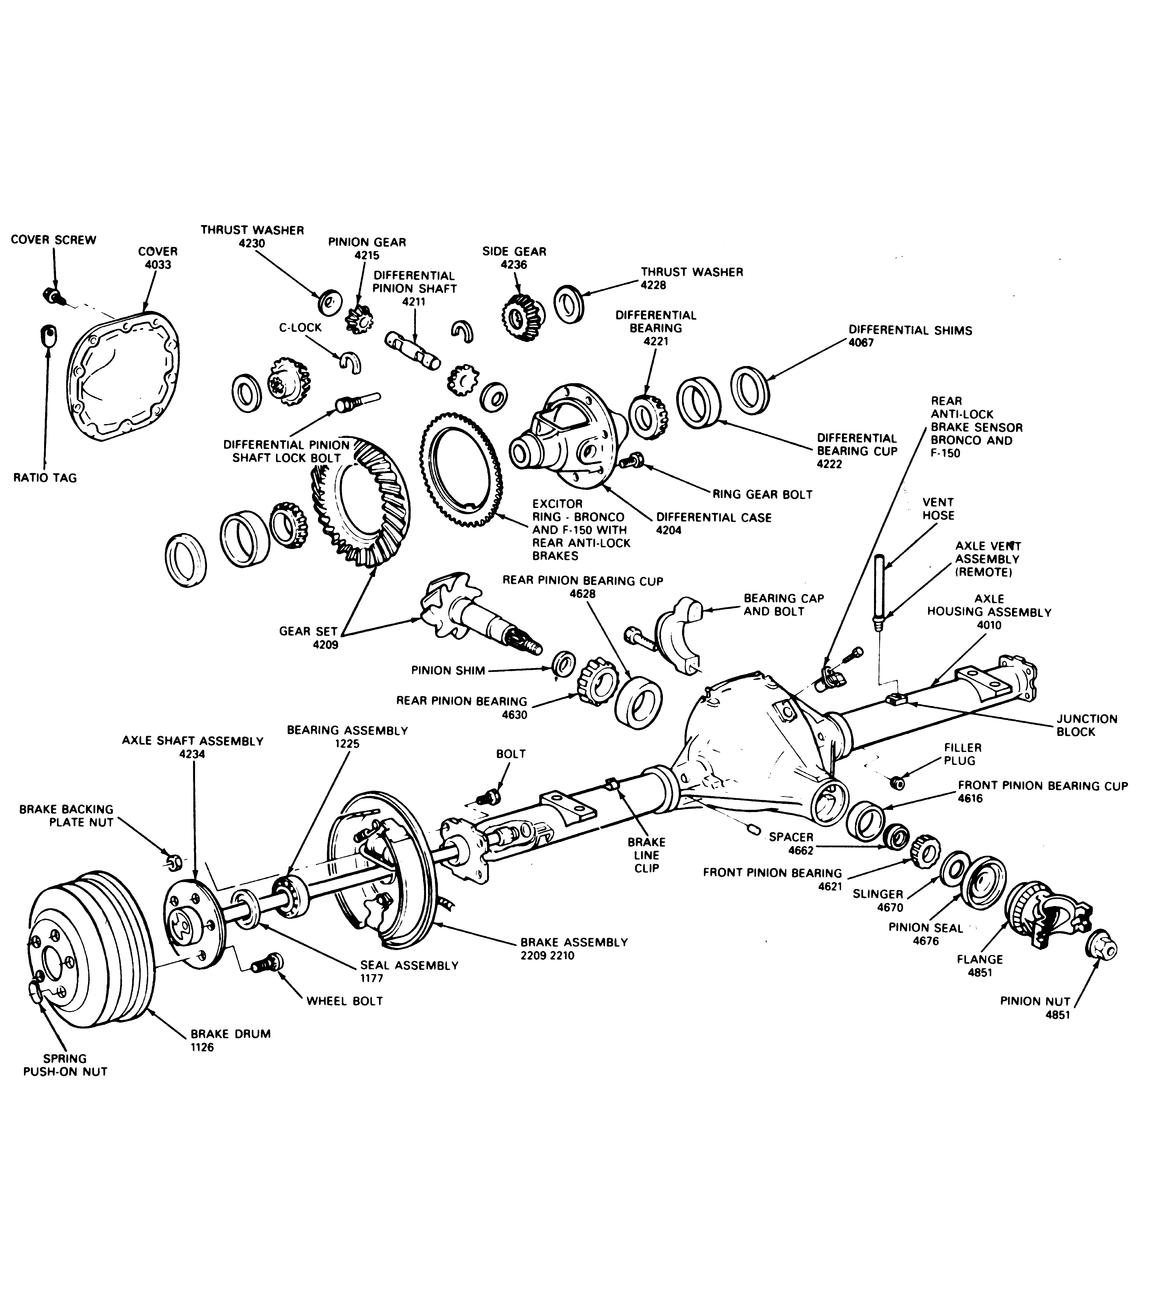 hight resolution of view exploded axle diagram